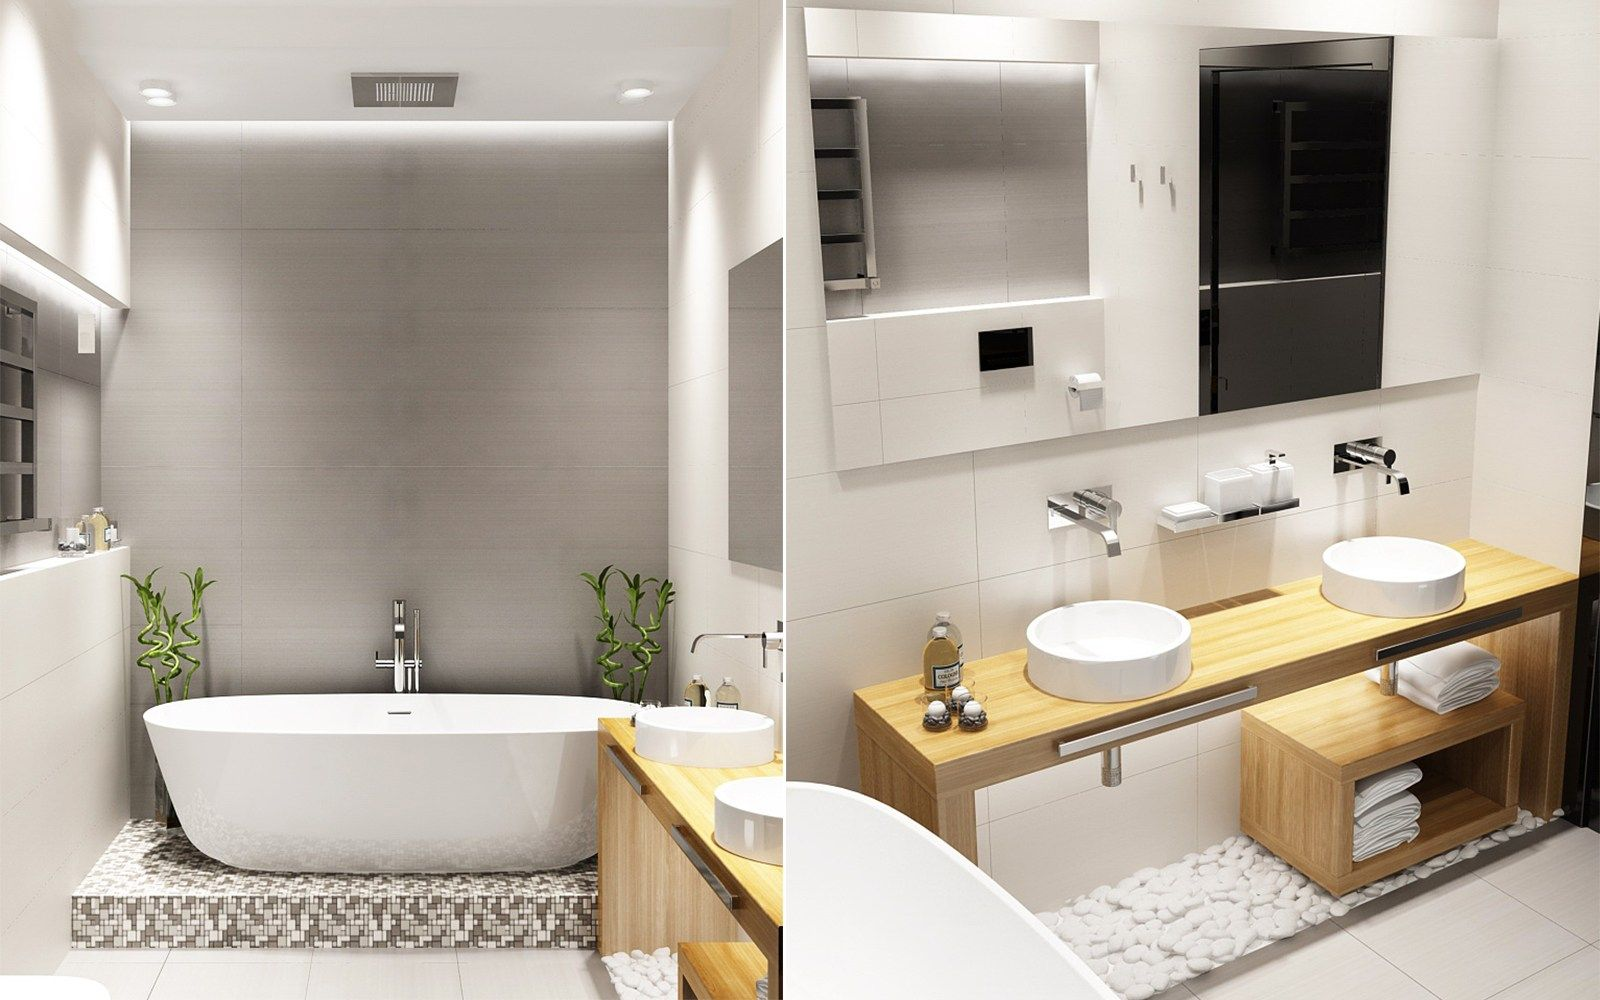 Kreative Weise Weisse Badezimmer Entwurfe Zu Verzieren Die Mit Einem Modernen Backsplash Dekor Verschonert Werden Best Bathroom Designs Elegant Bathroom Bathroom Design